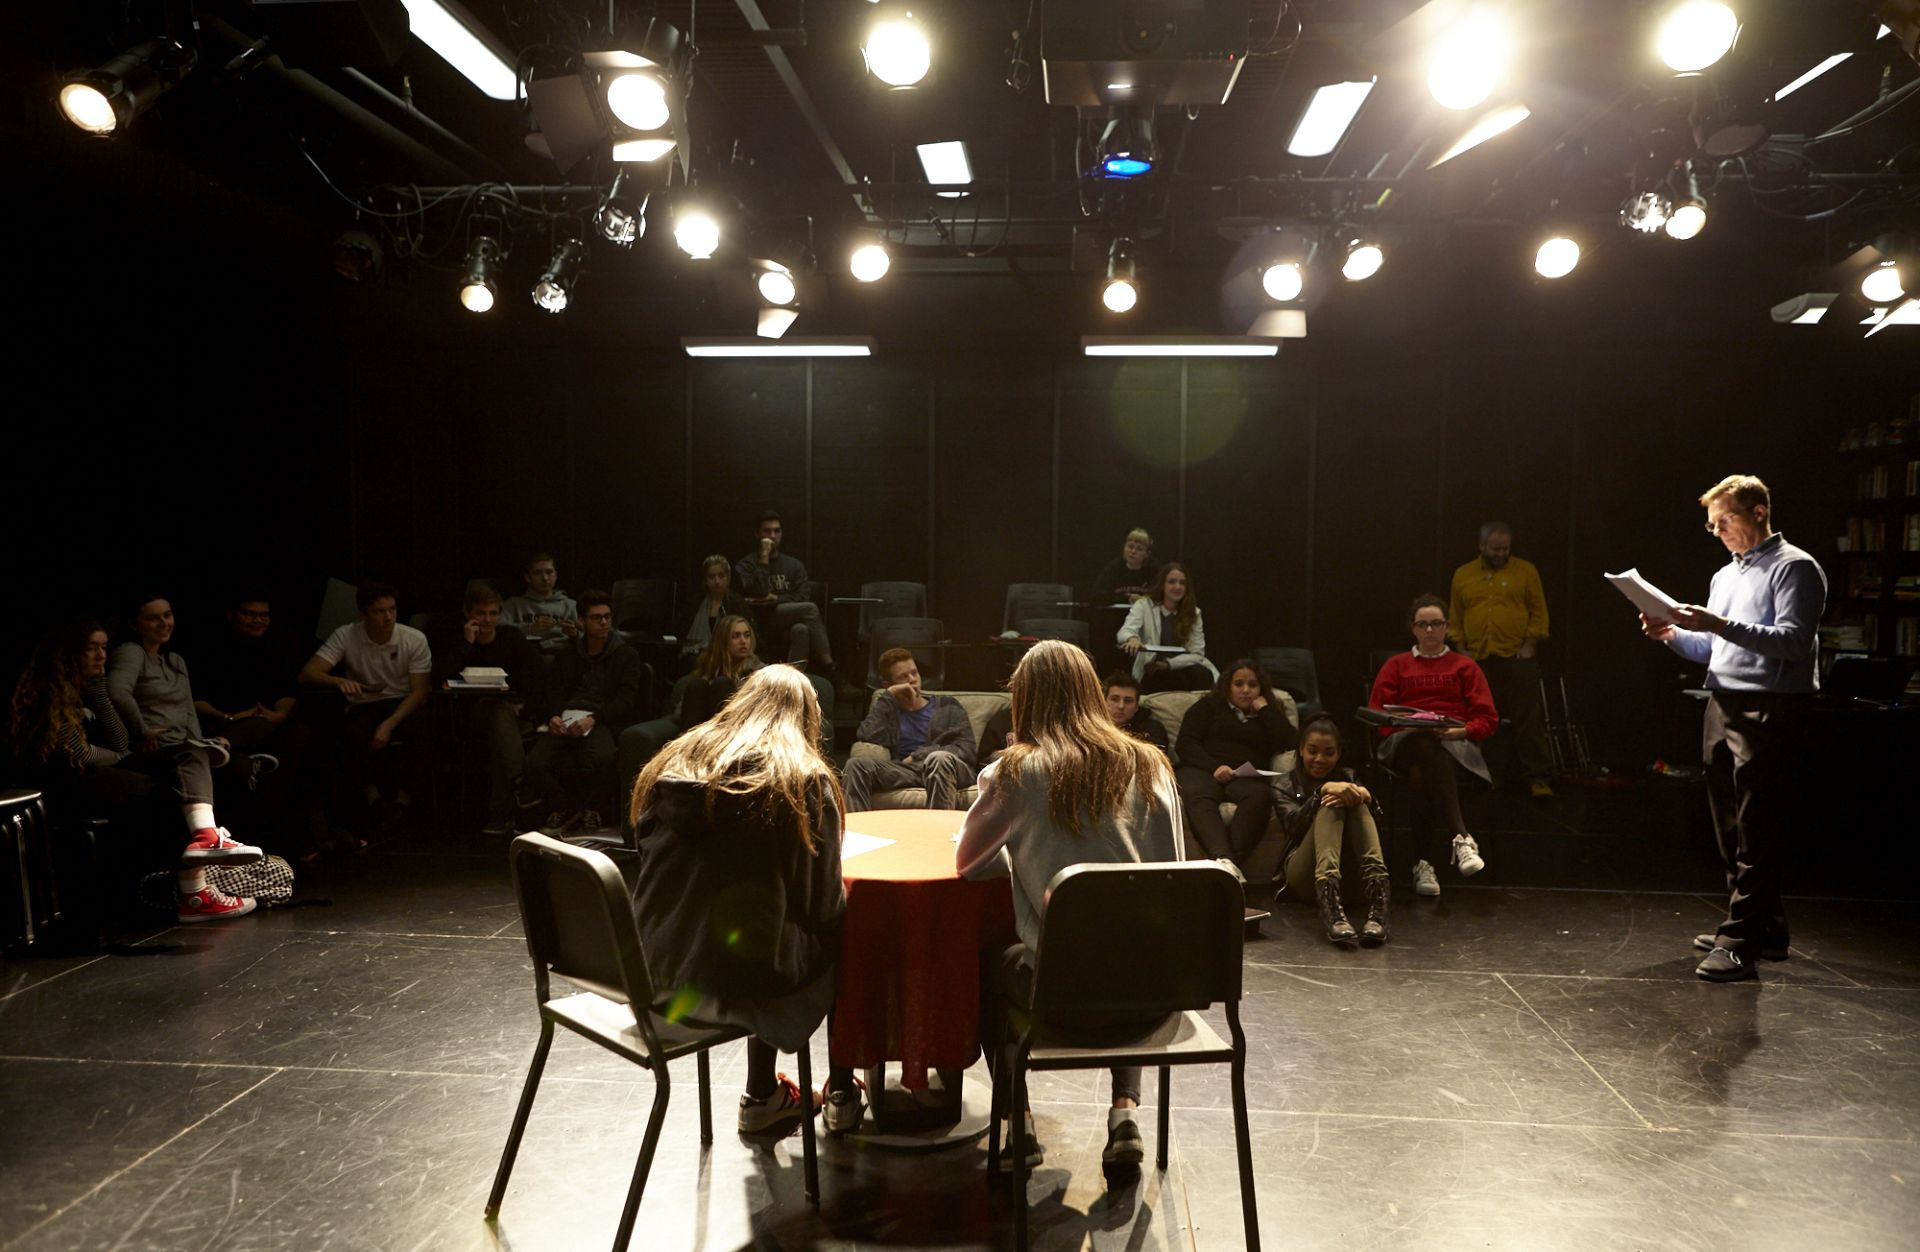 Middle and Upper School students take acting, improv, writing, and mindfulness classes, and rehearse for musicals and plays from within the Blackbox Theatre.